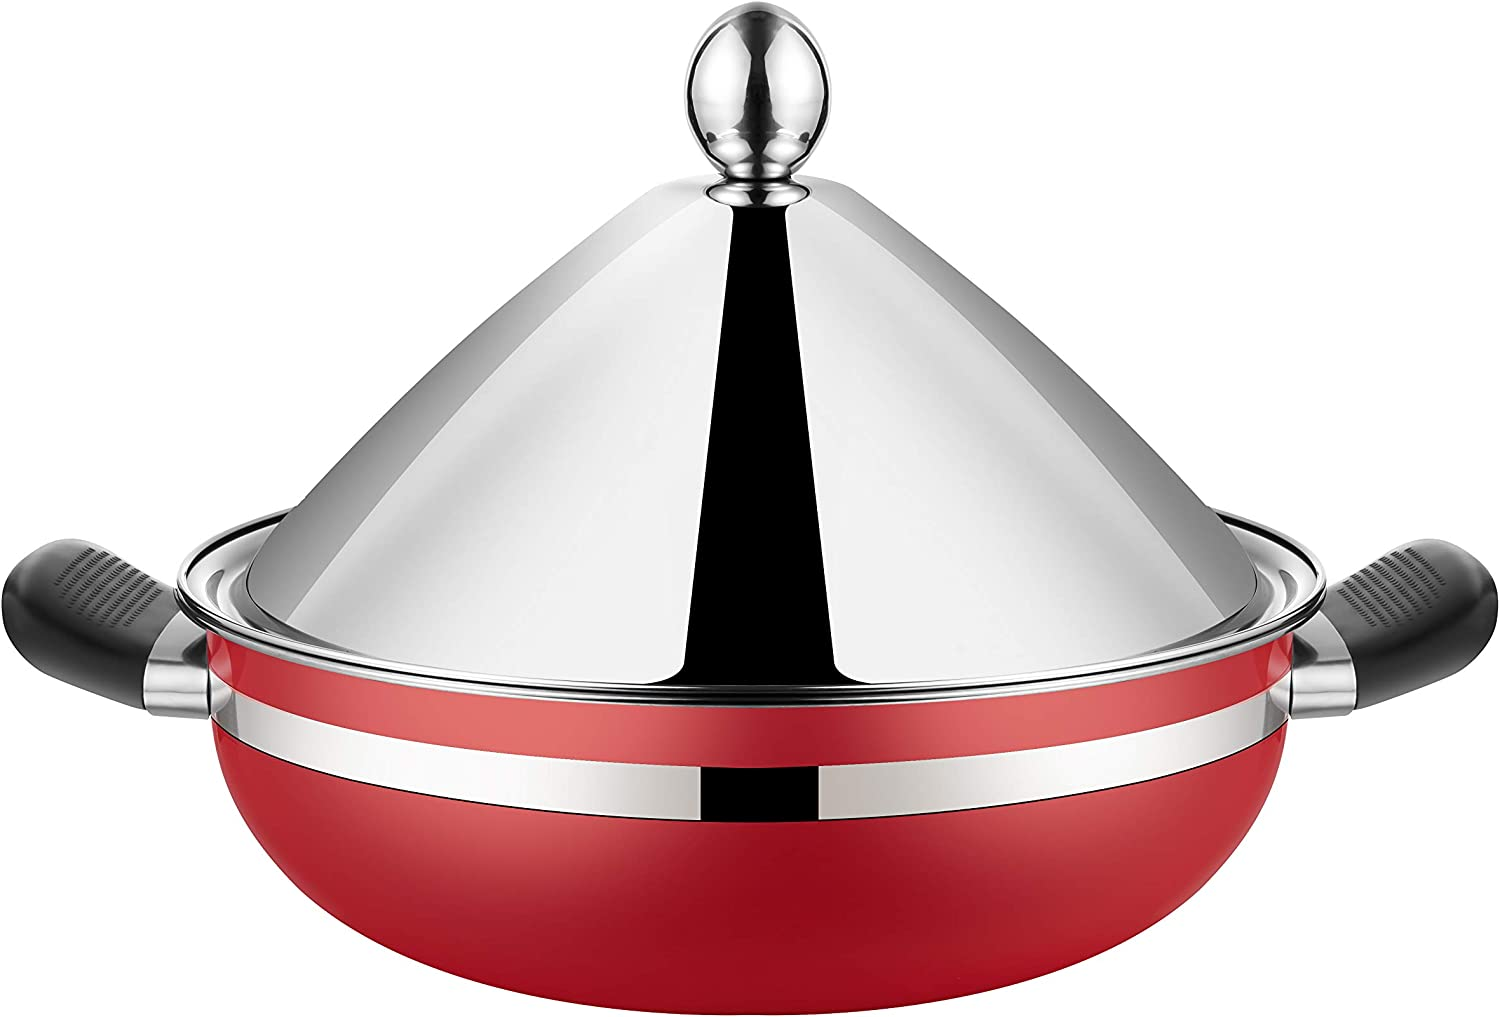 Stainless Steel Moroccan Tagine Pot, Steamer Pot, Braiser Tajine with Lid,10.2 Inches, 26cm,Red color